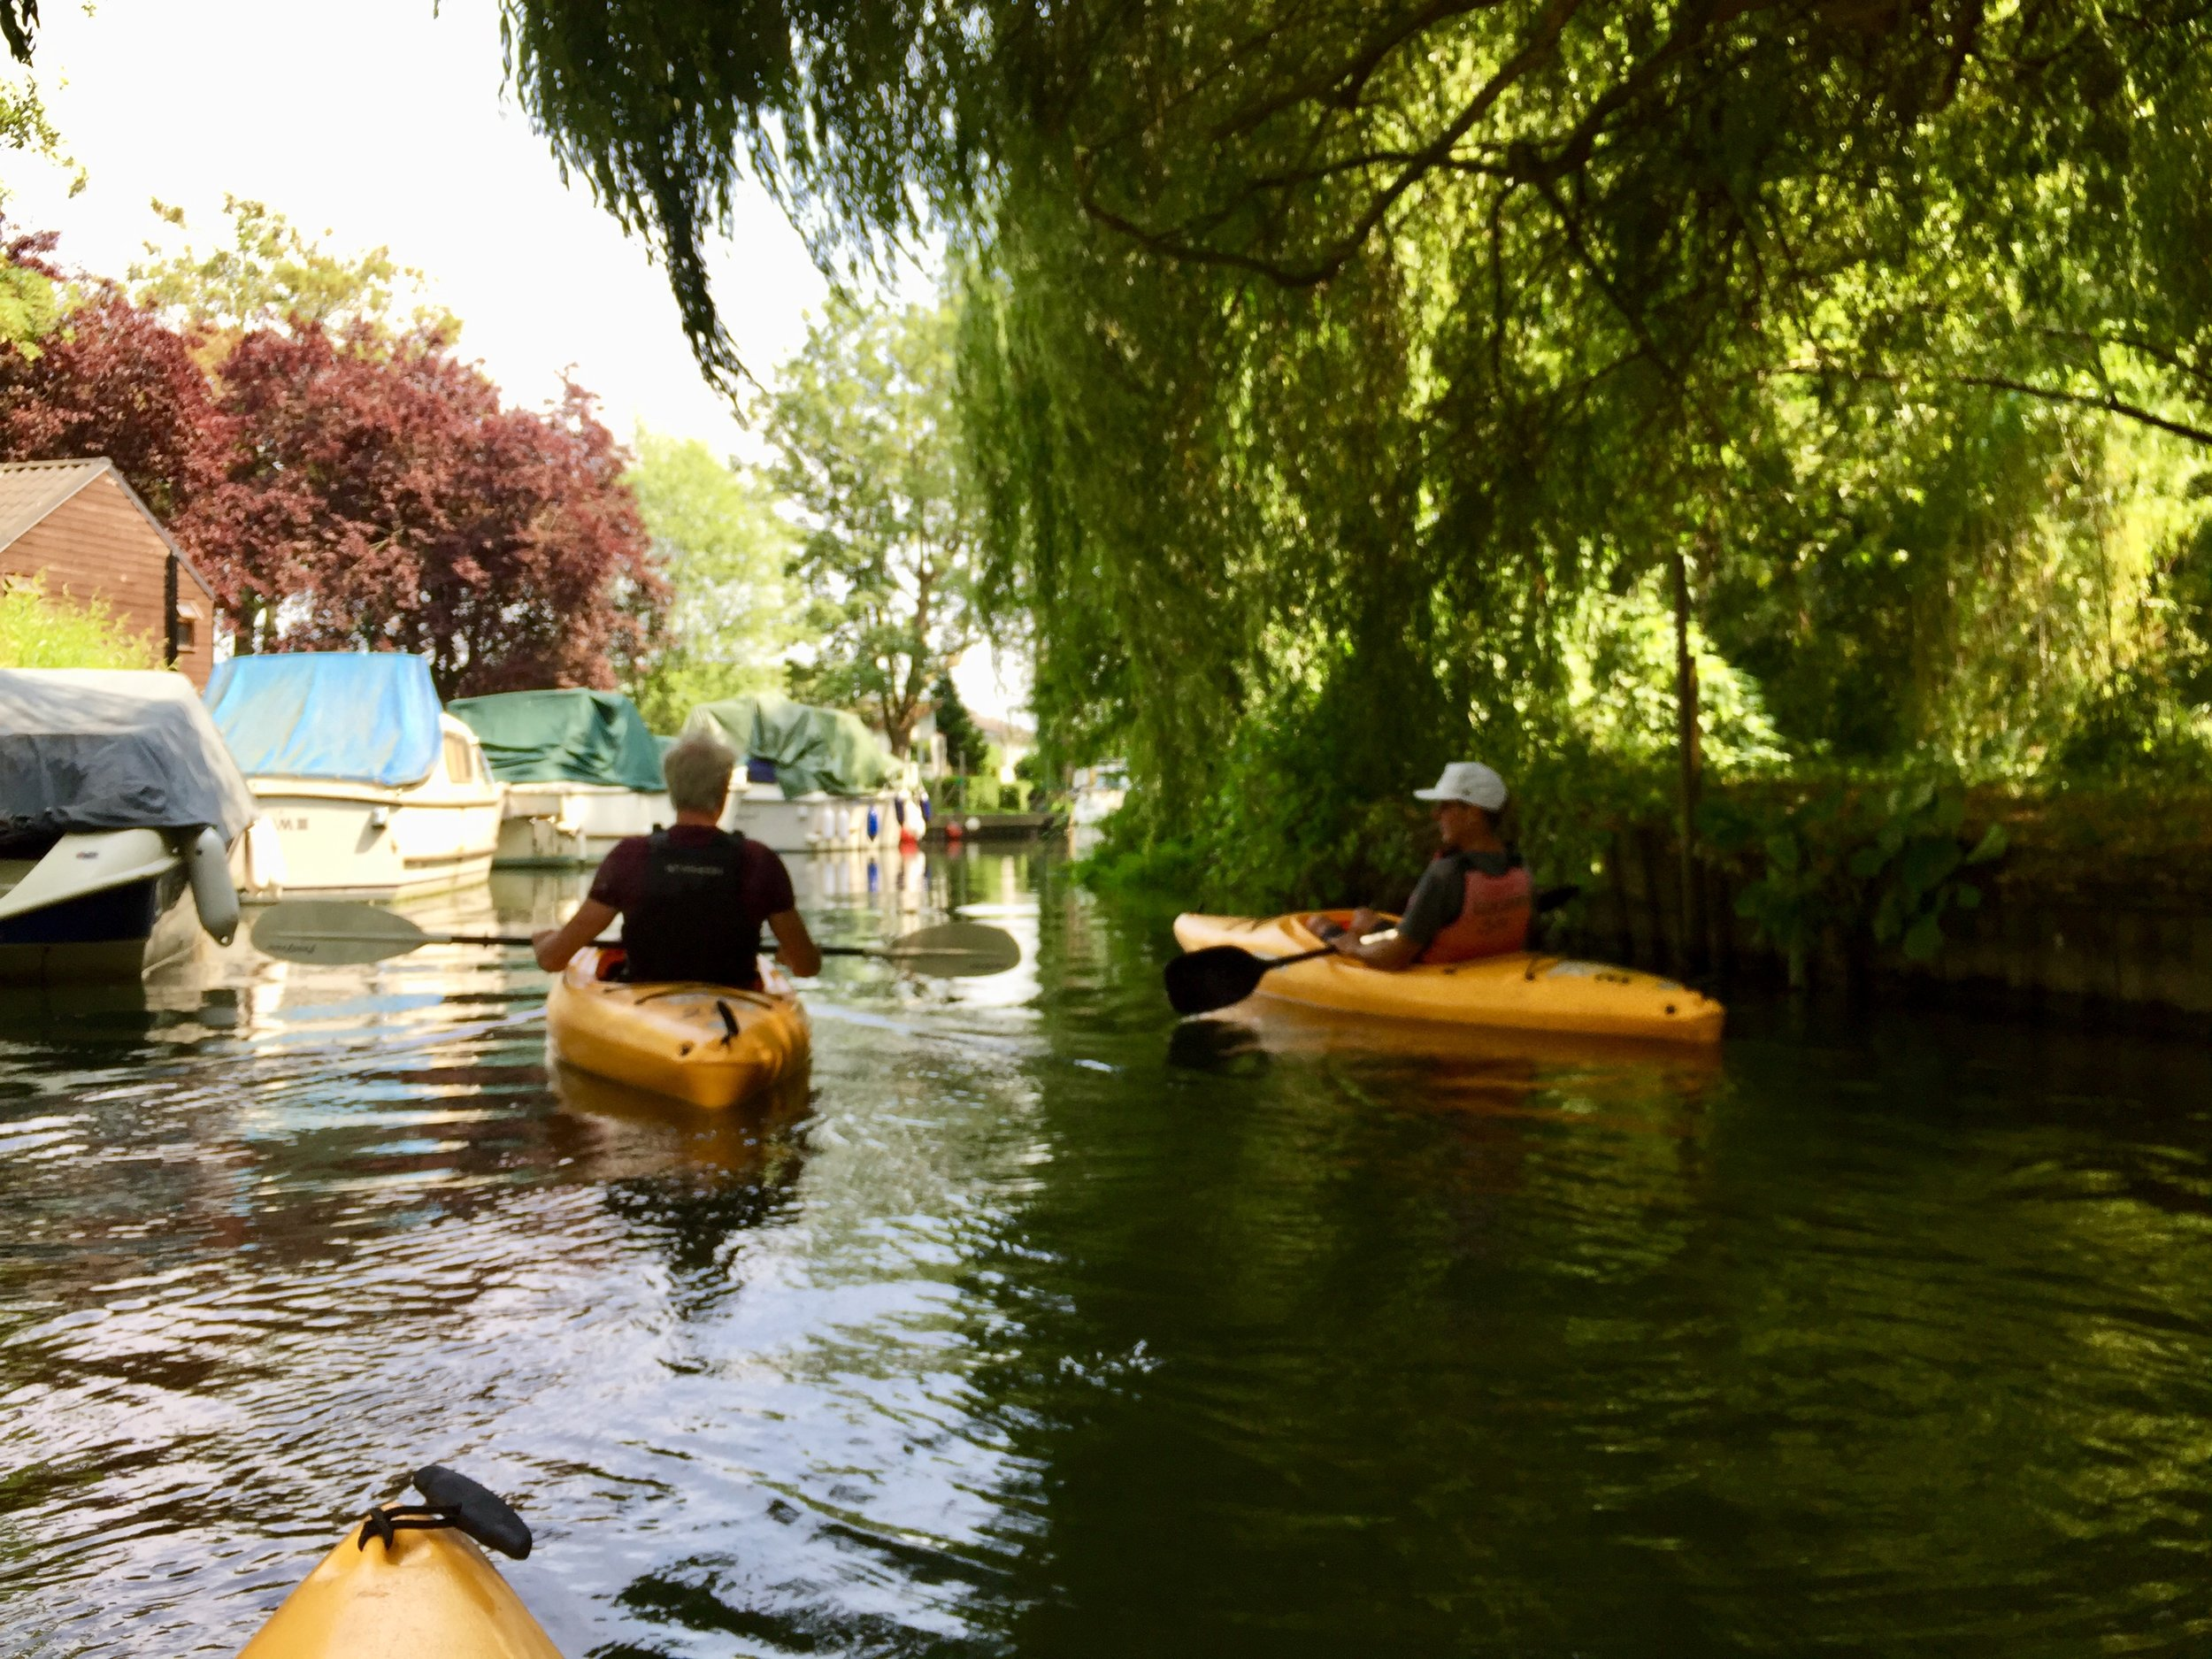 Rowing along willow-lined riverbanks? Yup.